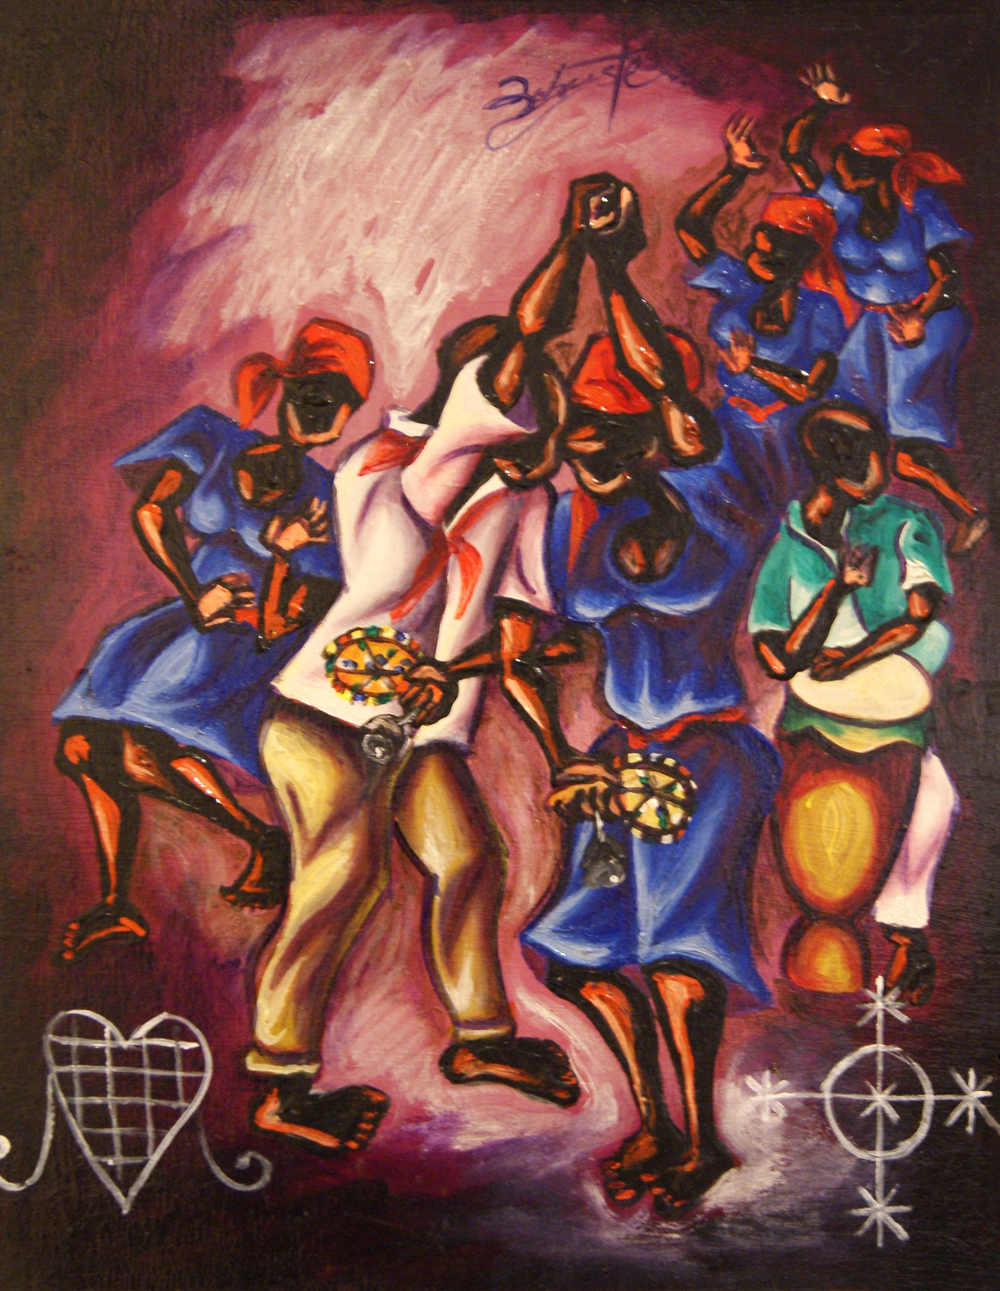 14 - Voodoo in Batey by Franck Robuste